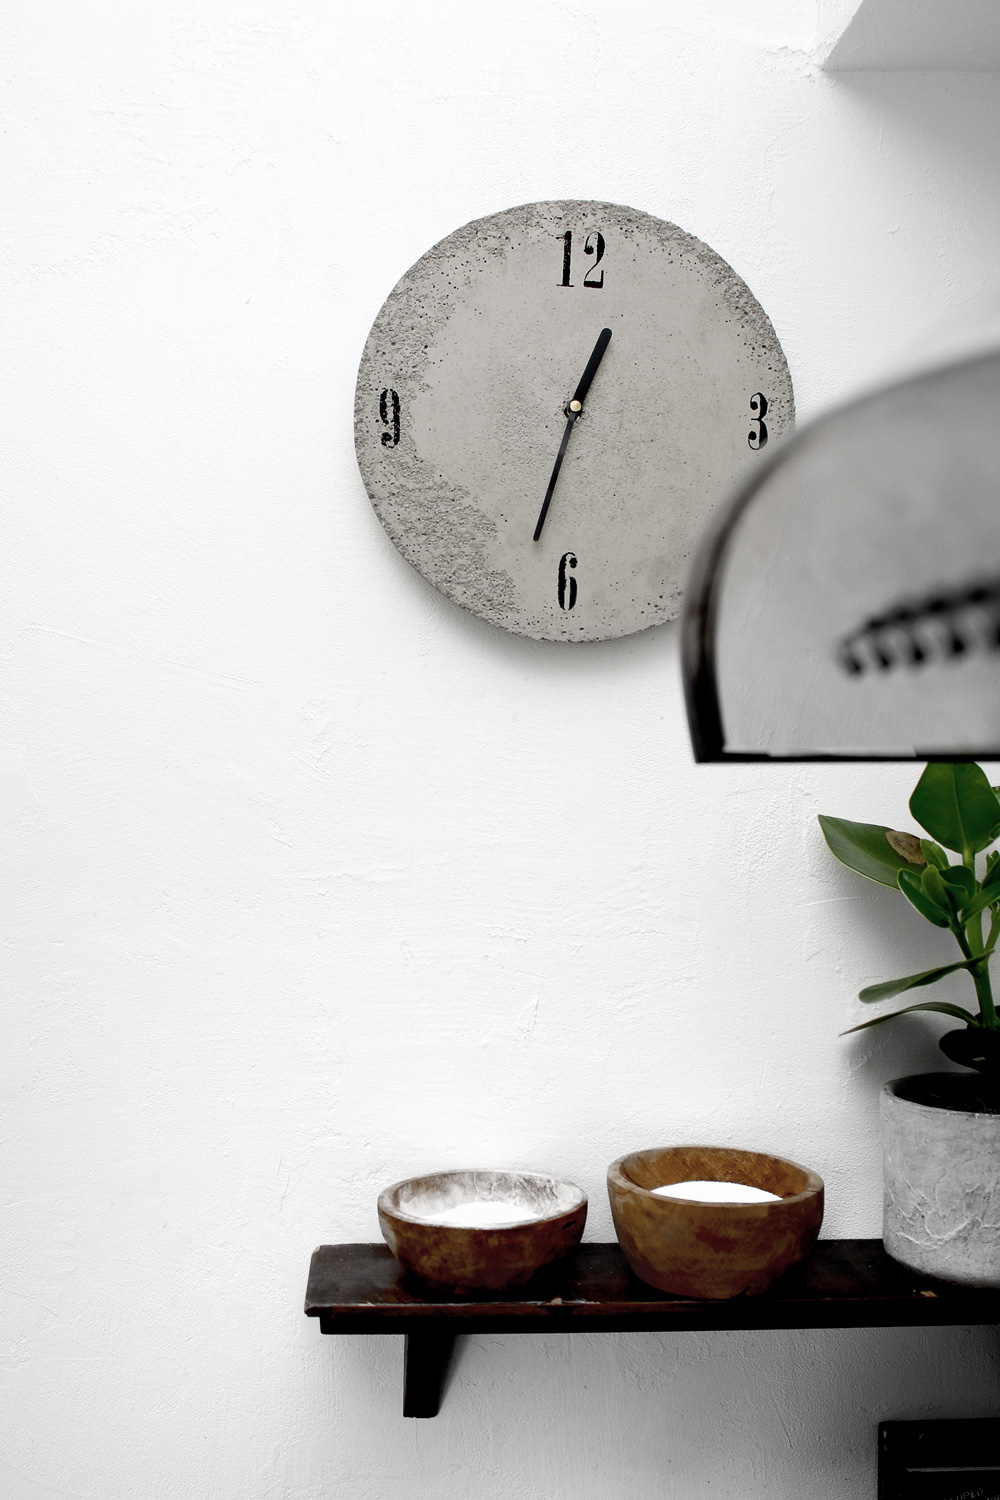 DIY concrete wall clock by Katarina Natalie